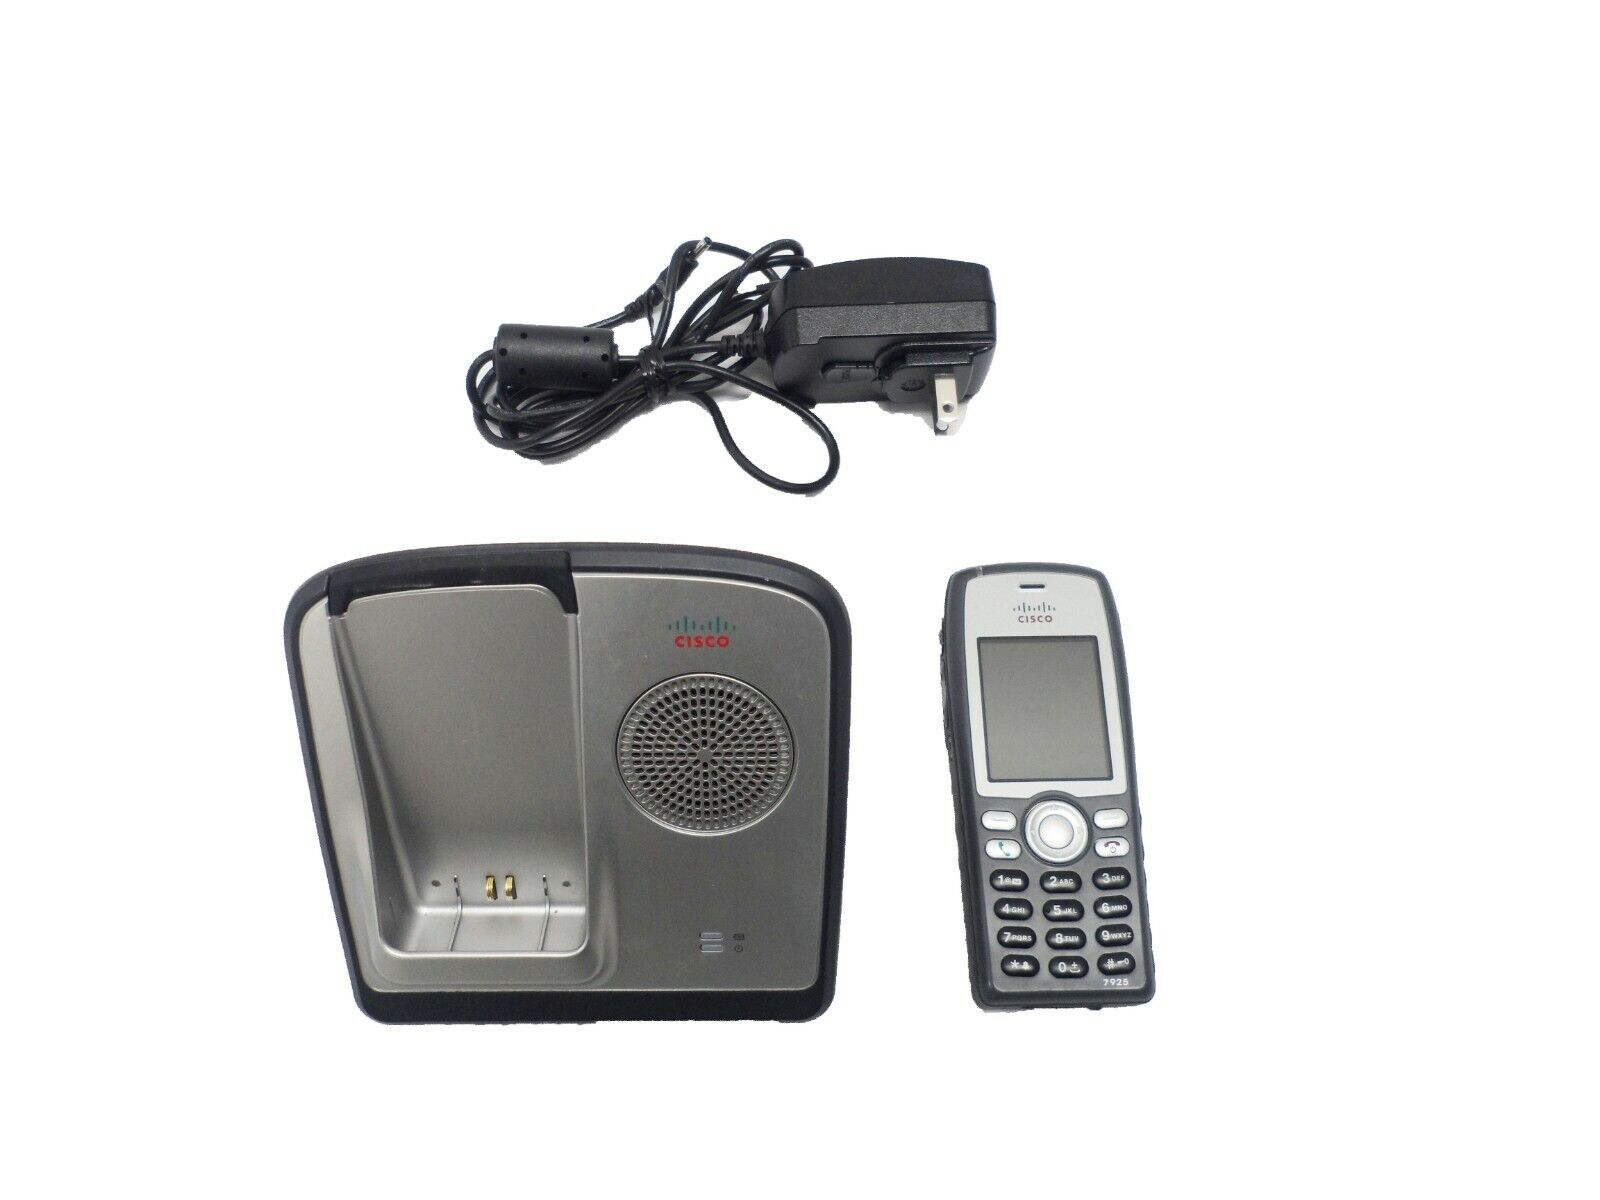 Cisco 7925 Wireless Phone ~ CP-7925G-A-K9 ~ tested ~ FREE SHIPPING